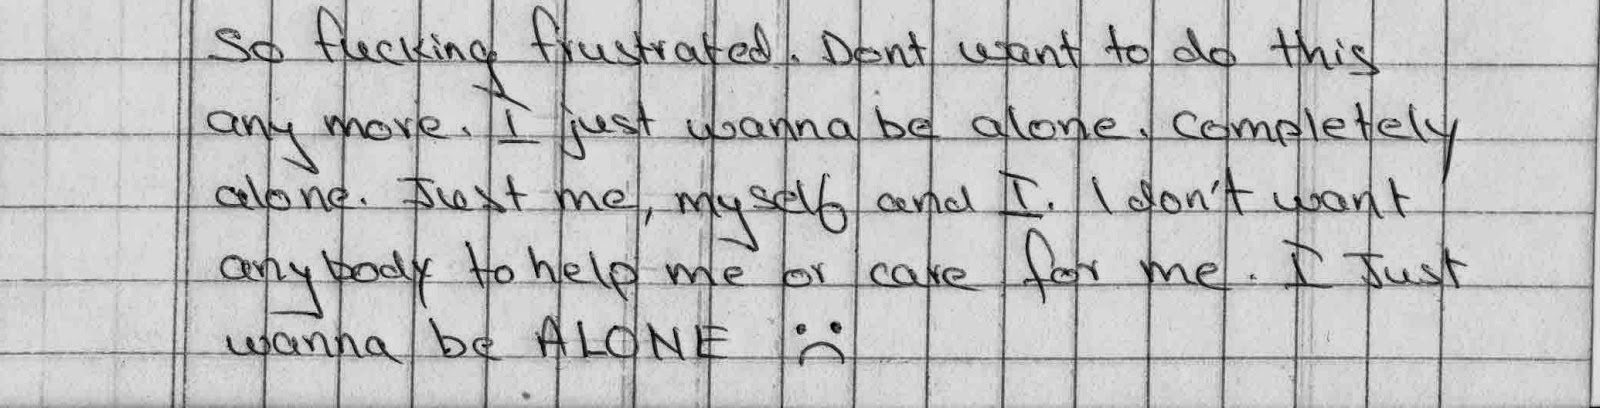 so fucking frustrated. Dont want to do this anymore. Ijust wanna be alone. I dont want anybody to help m